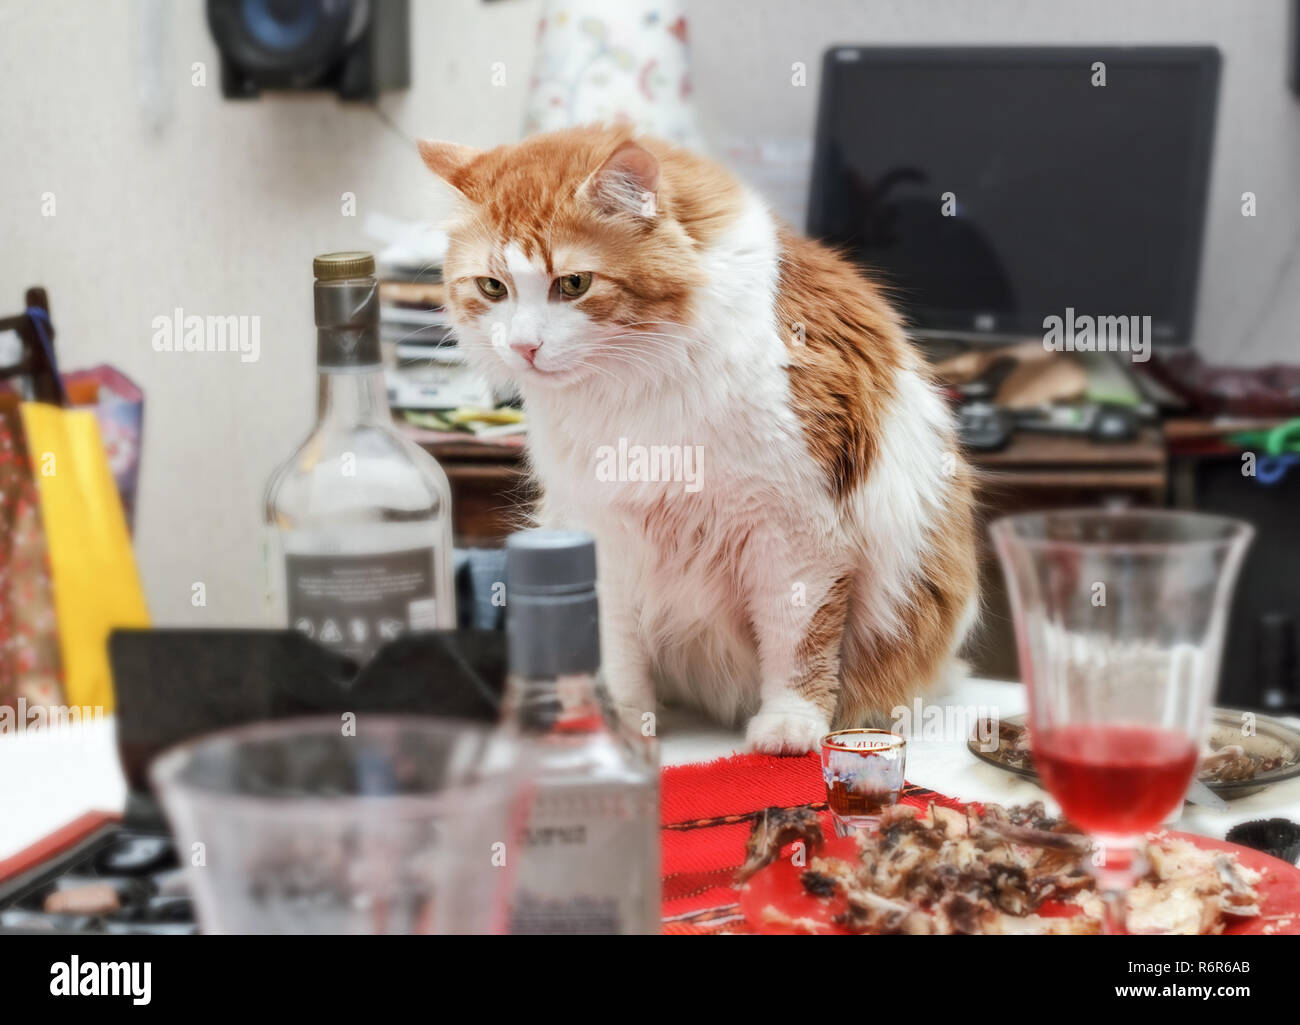 Red adult pretty cat on table with mess after celebration in room - Stock Image